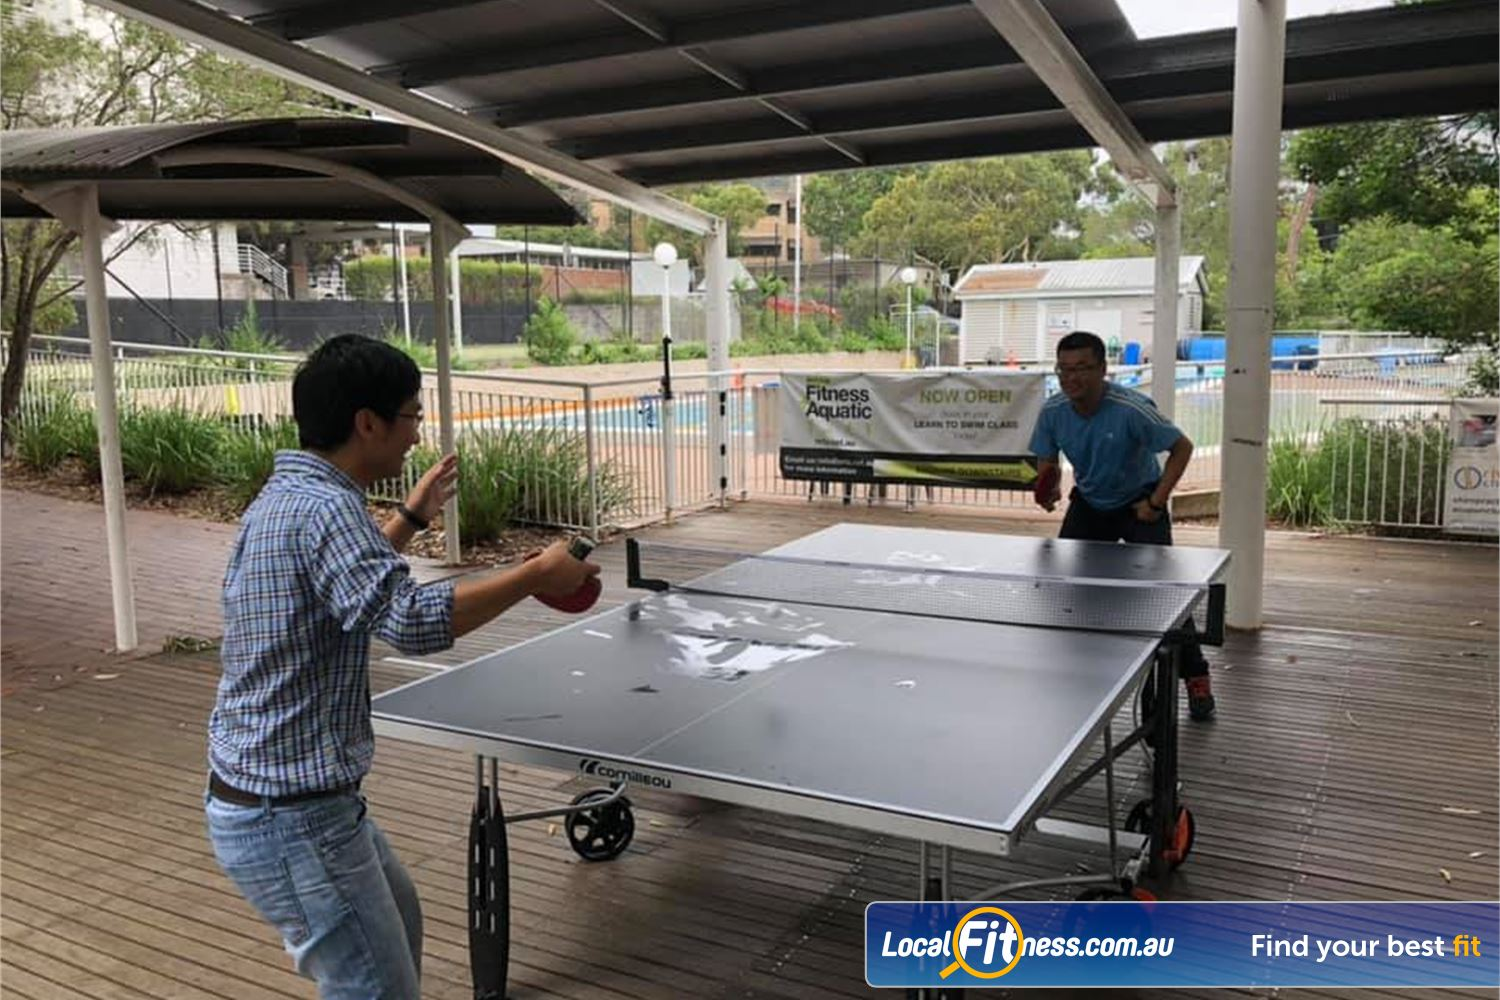 North Ryde Fitness & Aquatic Near Marsfield Our multi-sport facility includes table tennis.